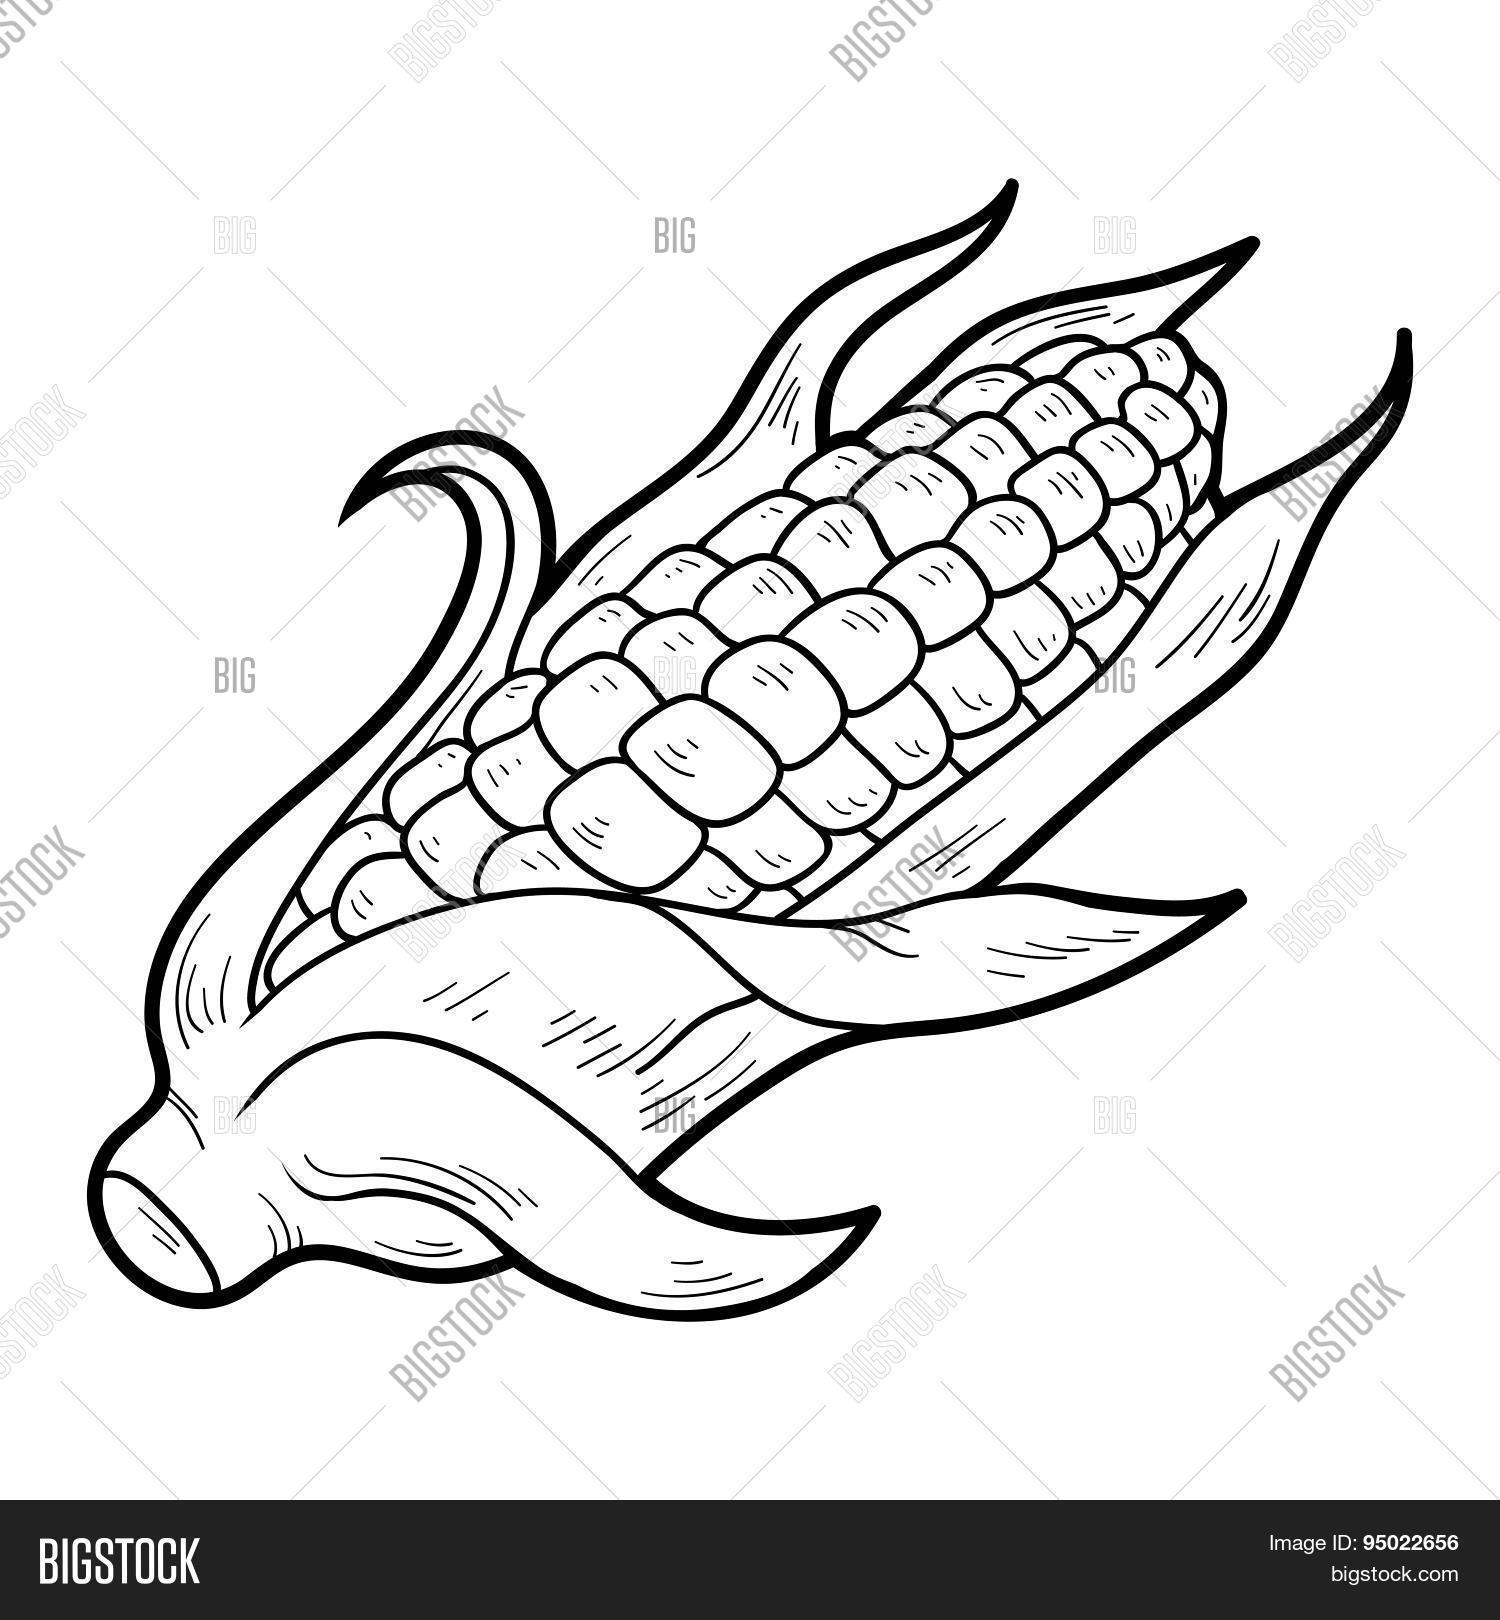 Coloring book pictures of vegetables - Coloring Book Fruits And Vegetables Corn